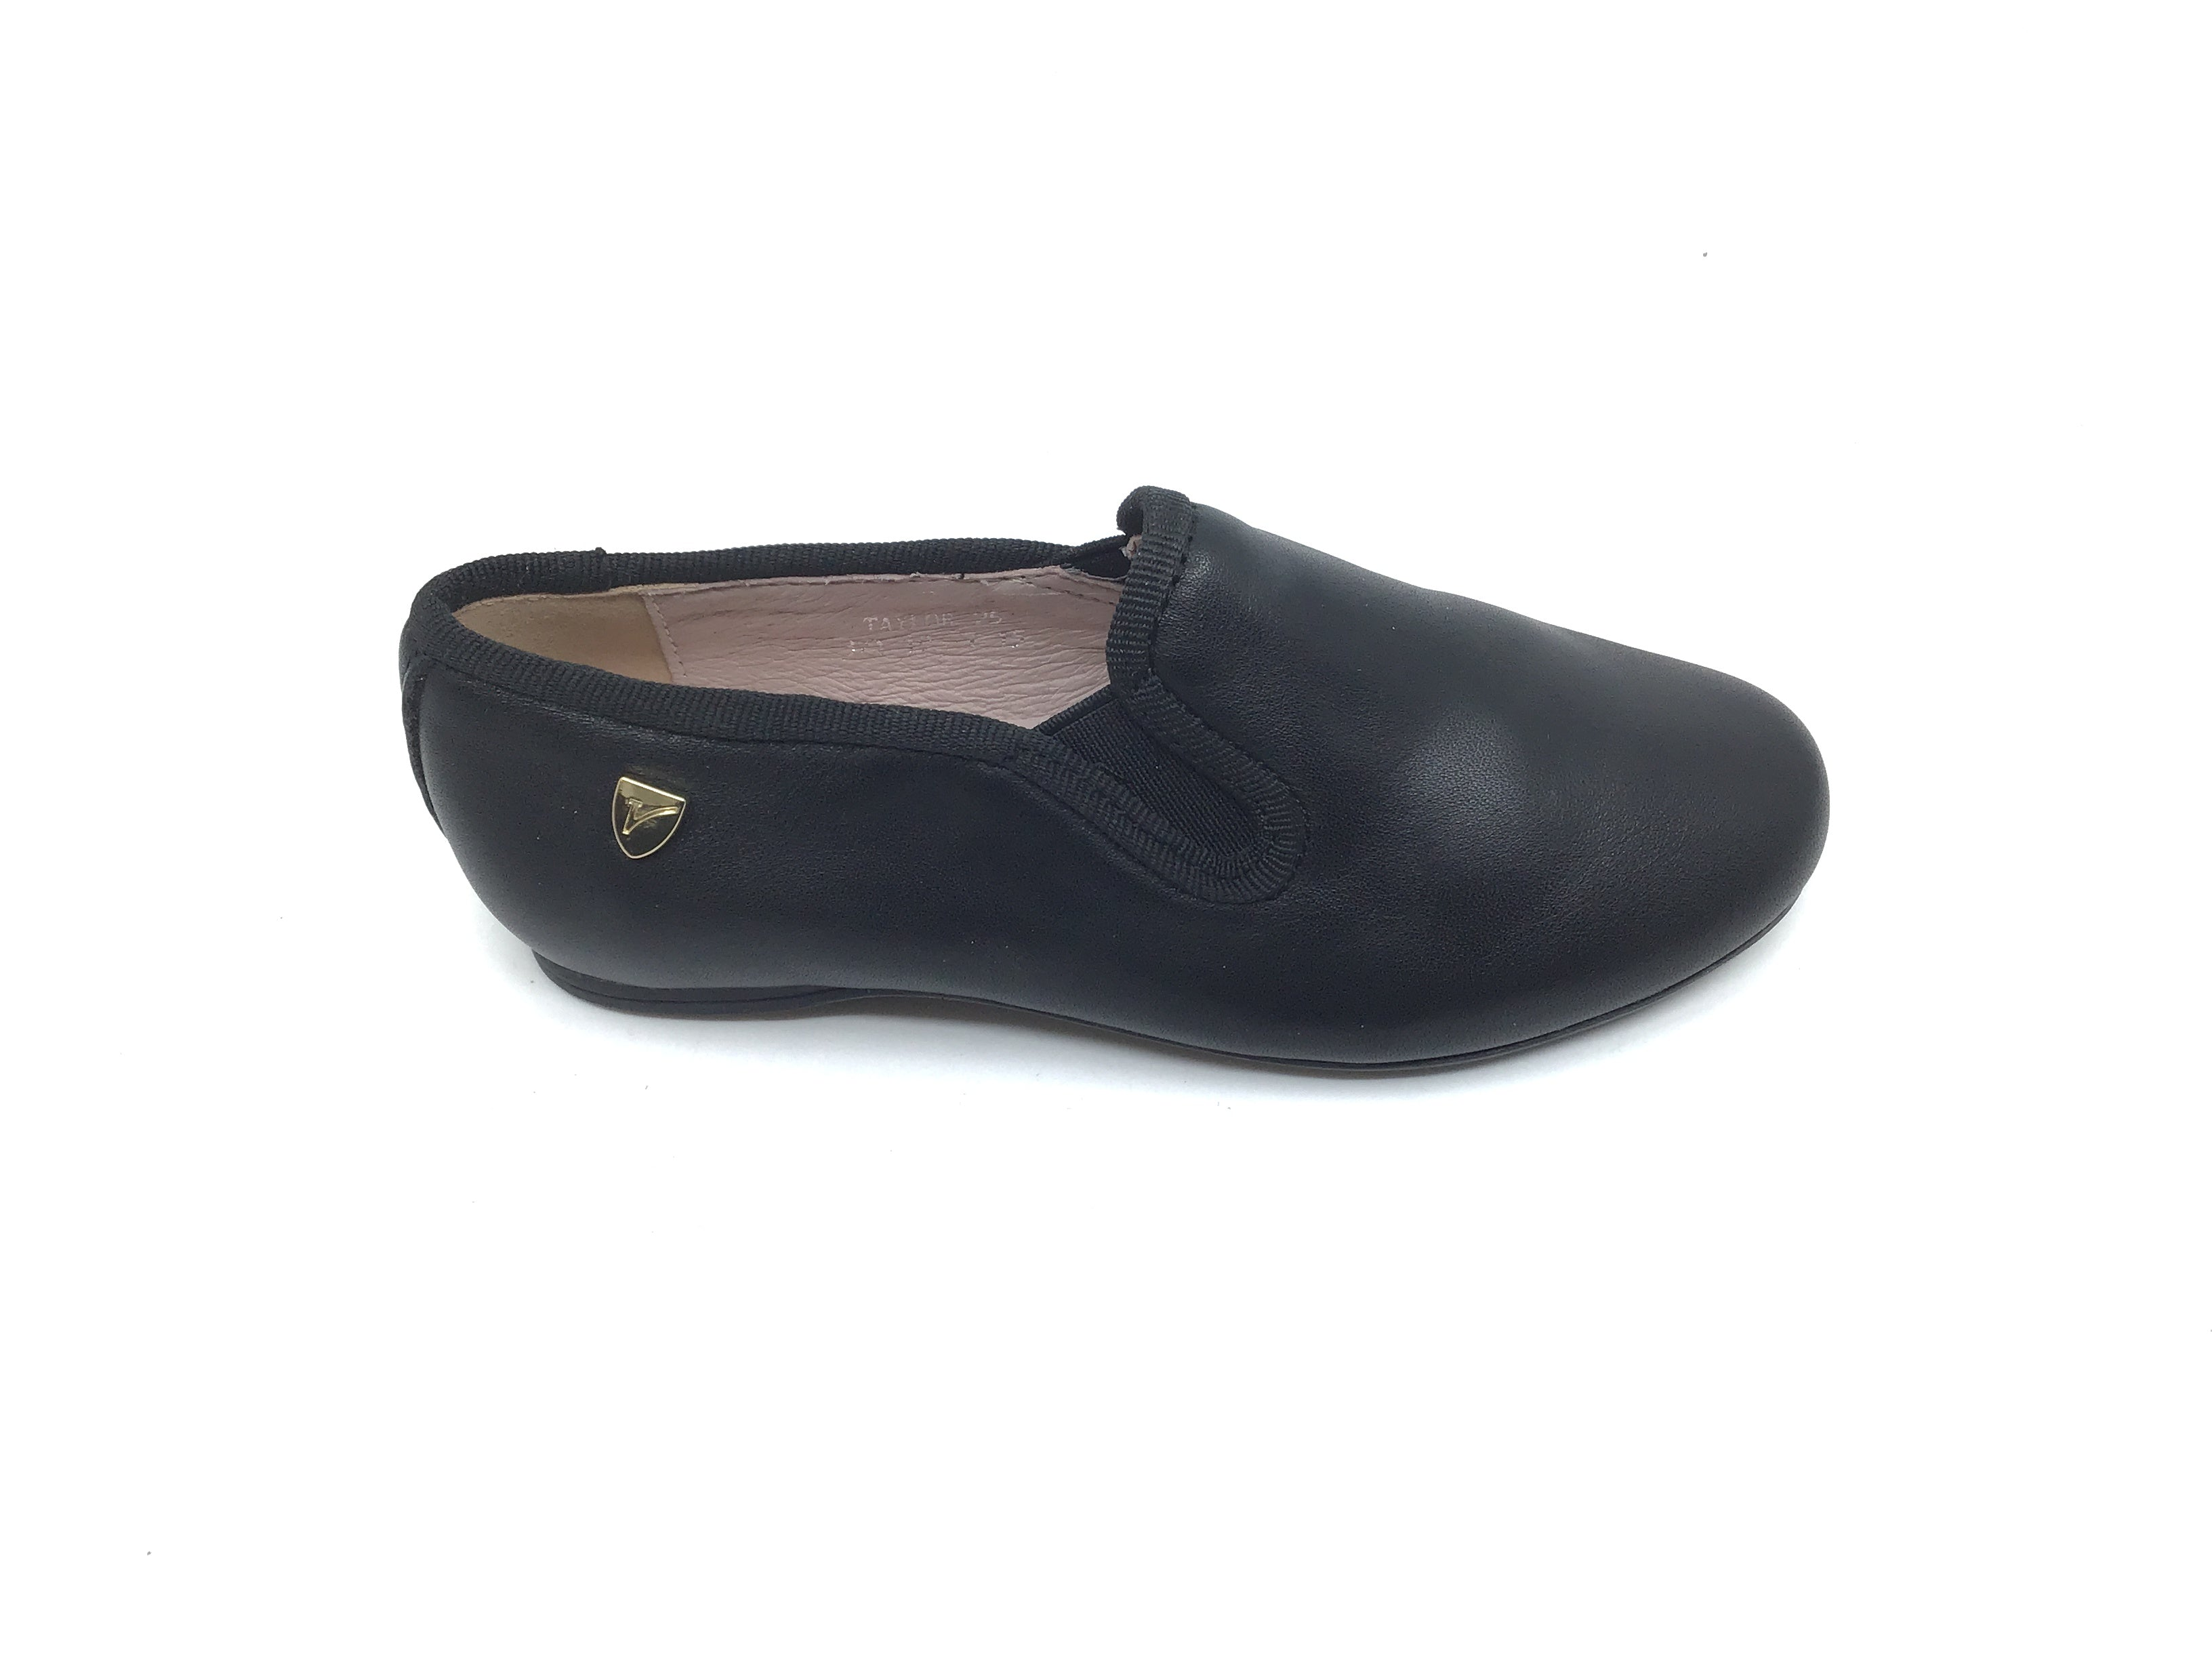 Venettini Black Elastic Dress Shoe